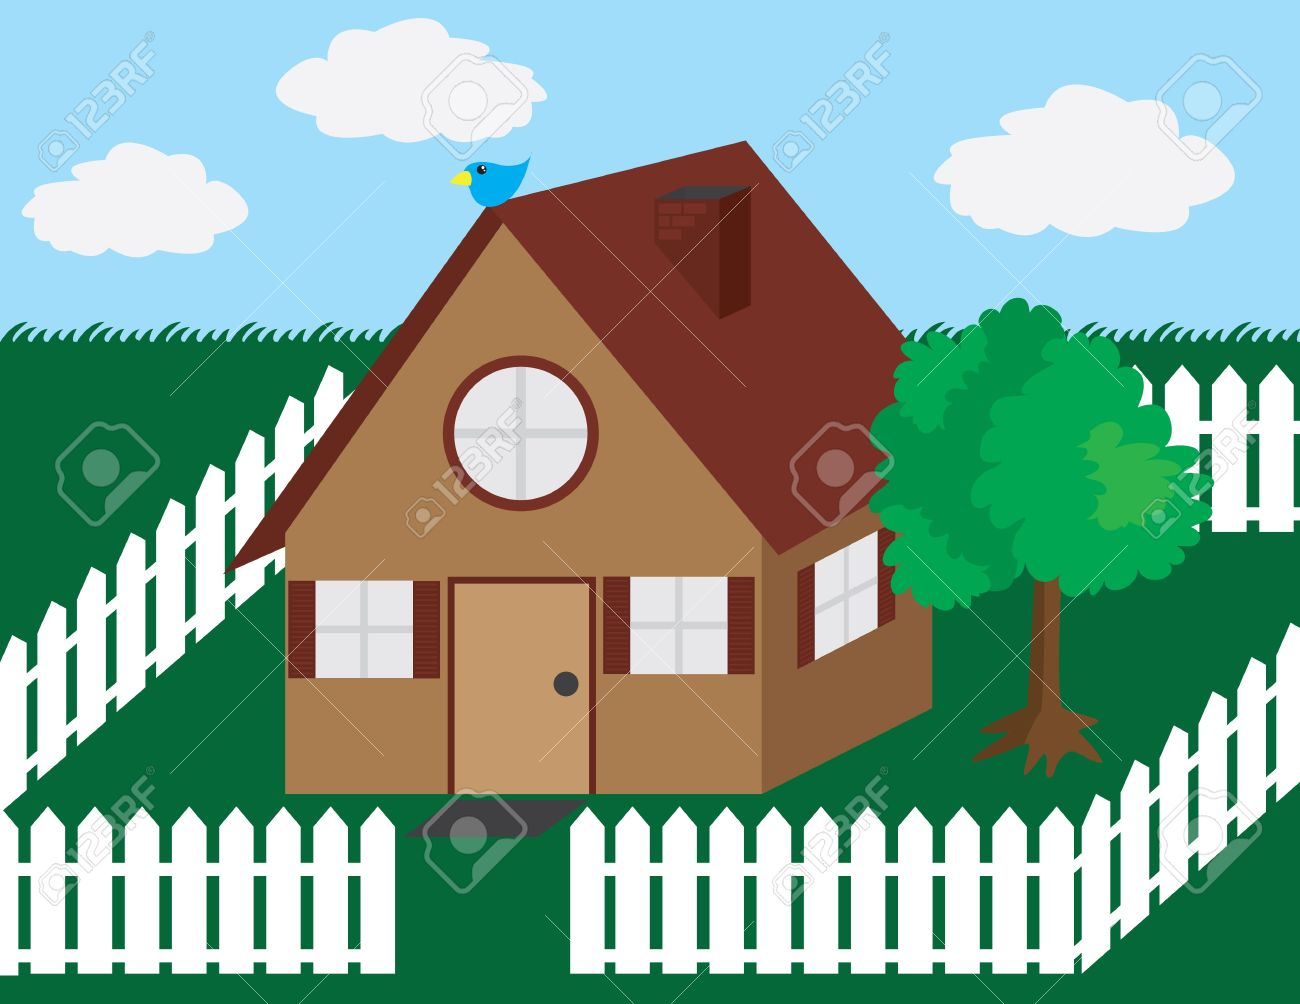 House Illustration With Picket Fence And Tree. Royalty Free.